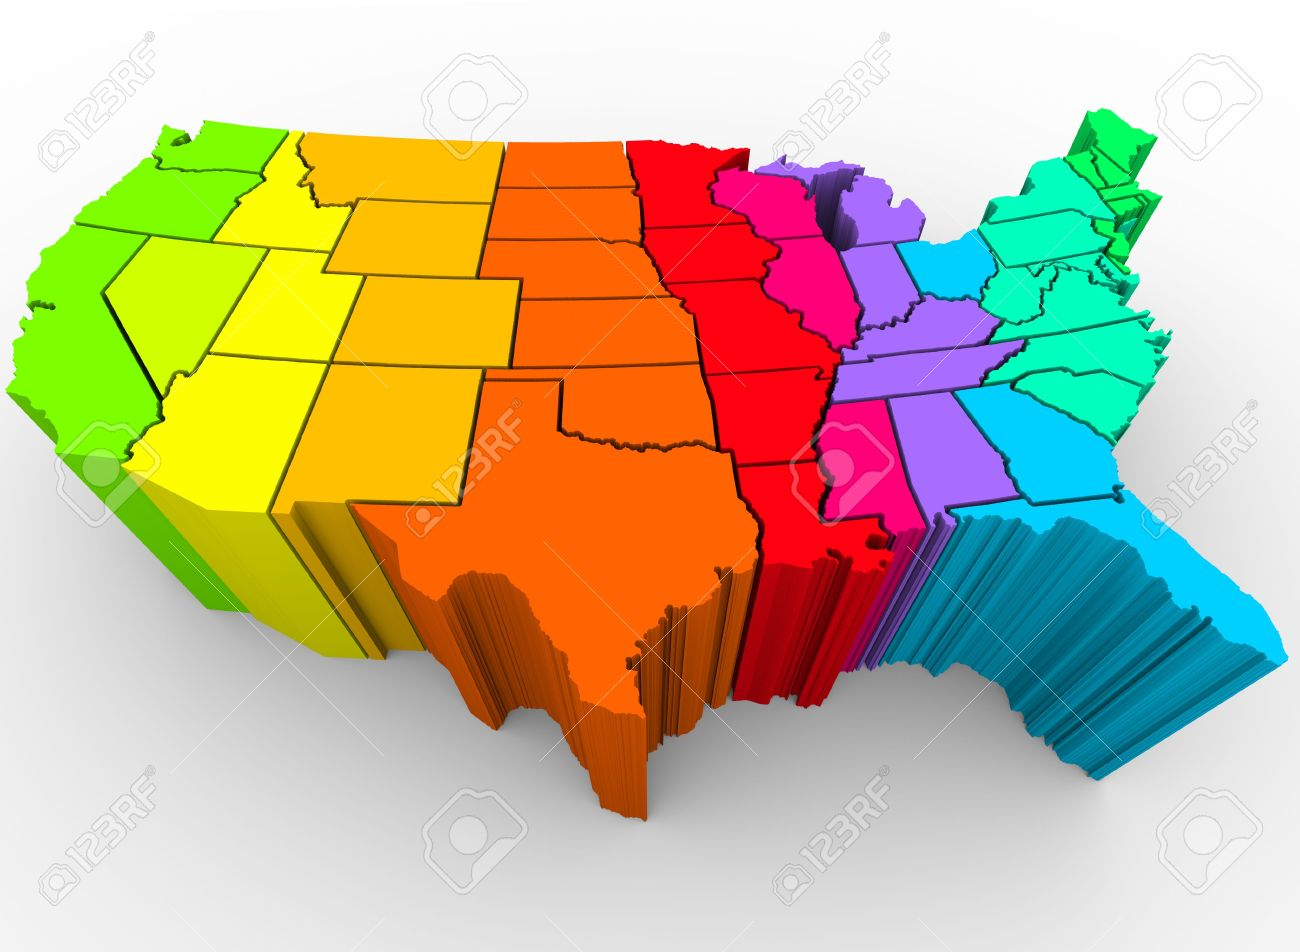 A Map Of The United States In A Rainbow Of Colors Symbolizing - A map of the united states